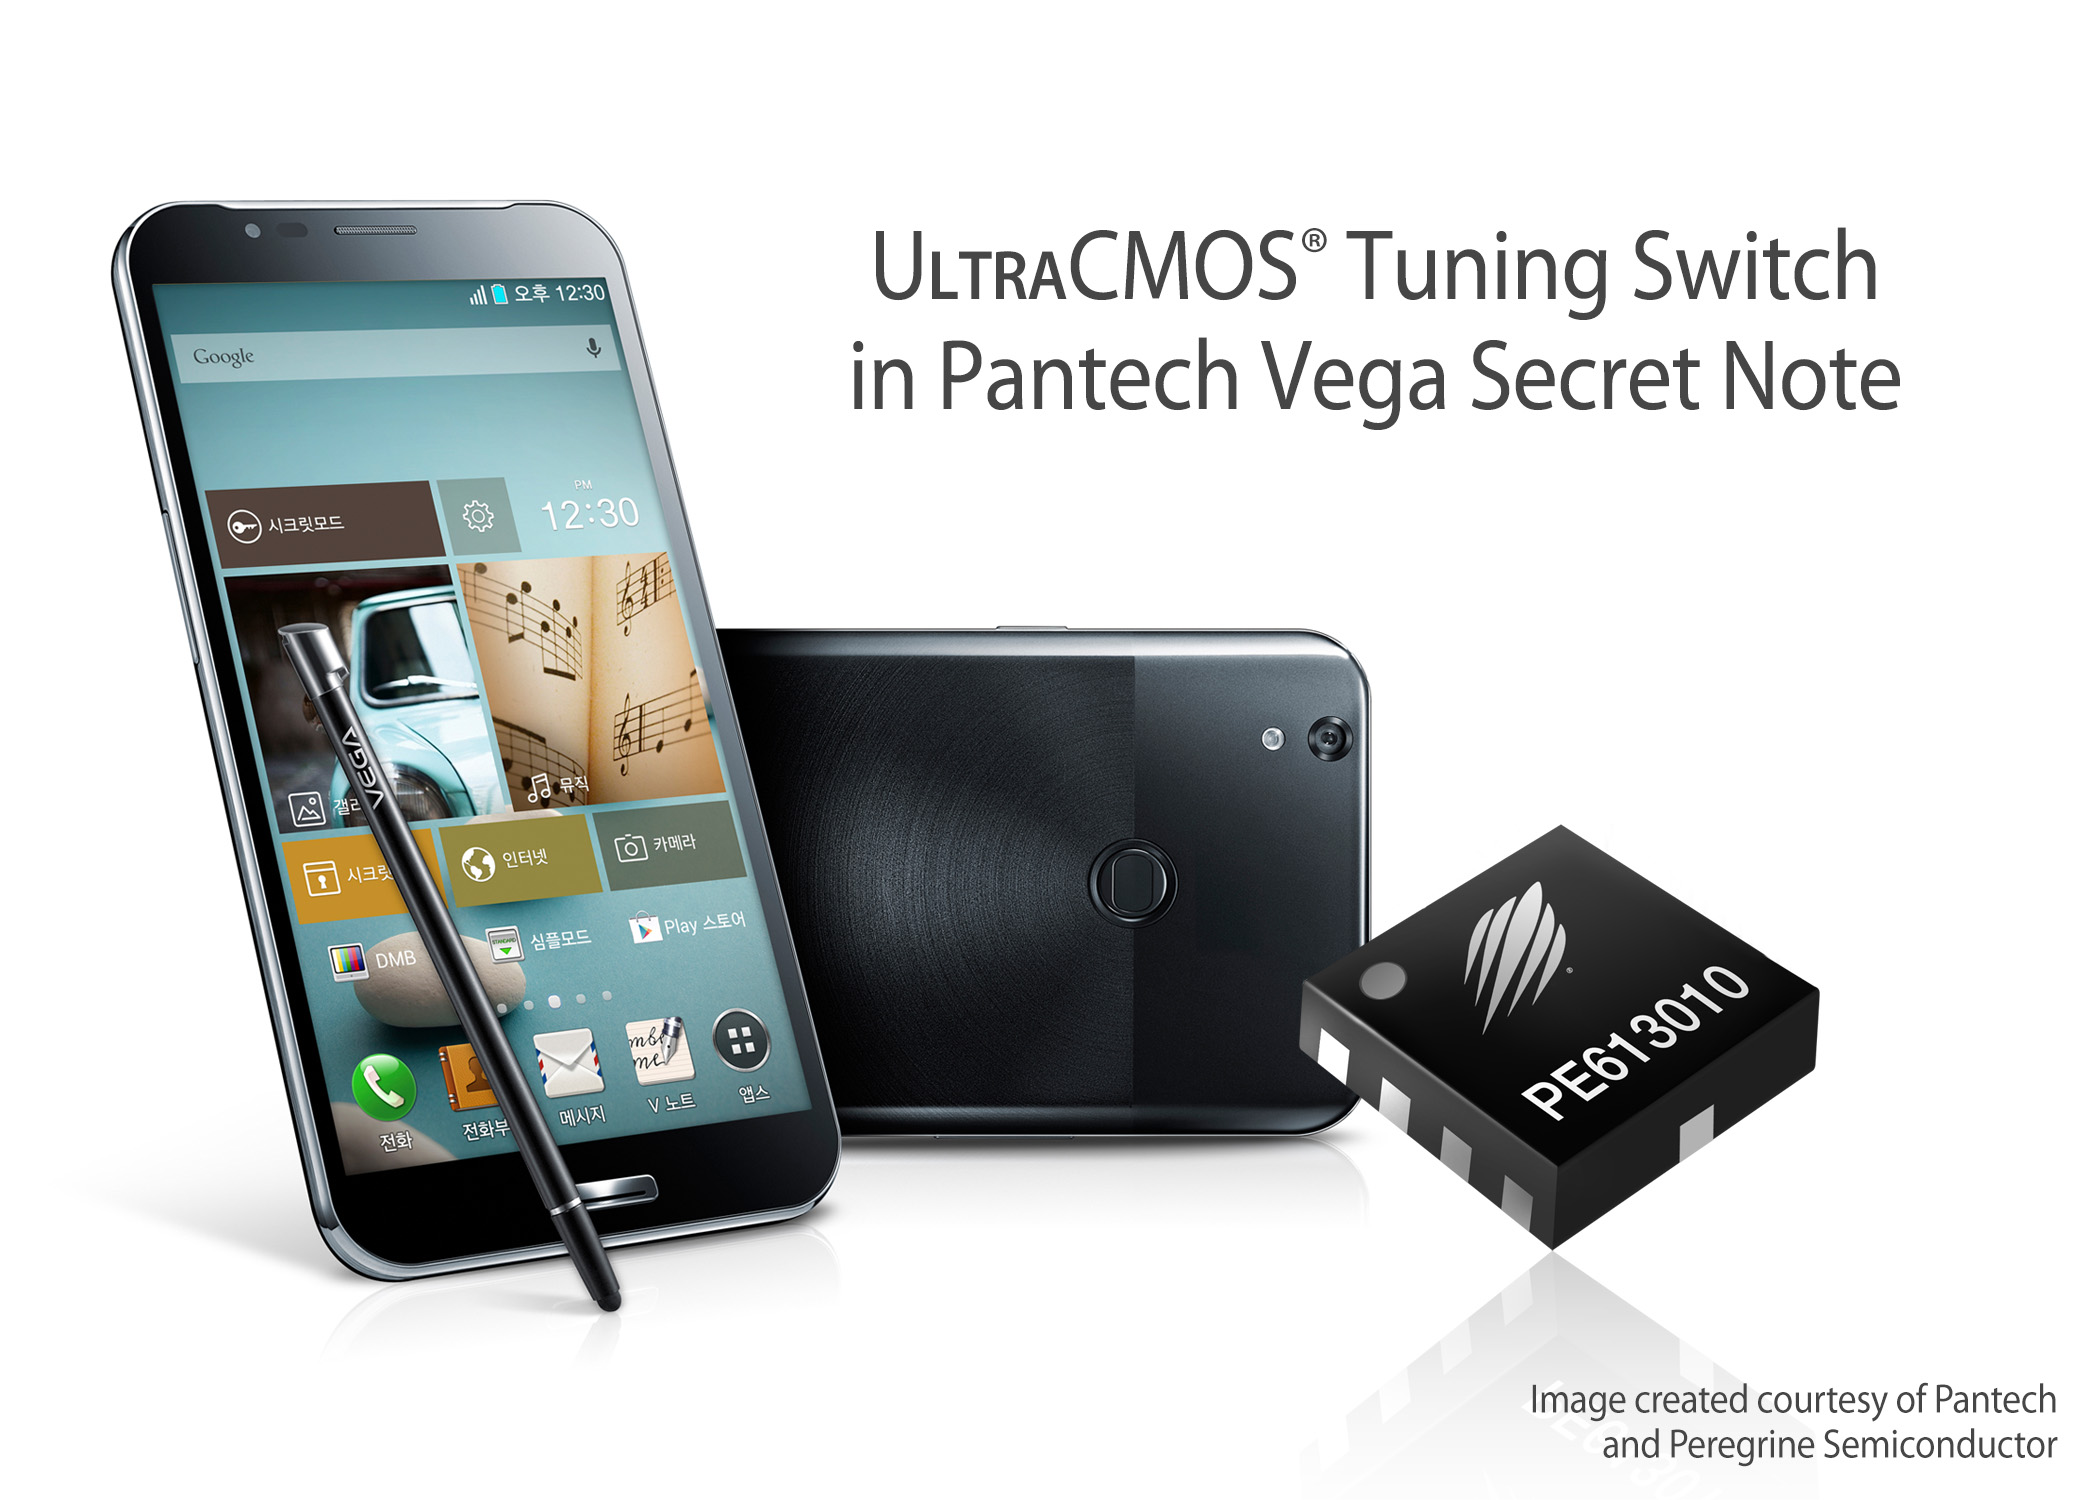 Peregrine Semiconductor's UltraCMOS® switch enhances signal connection for new Pantech Vega Secret Note LTE-A phablet.